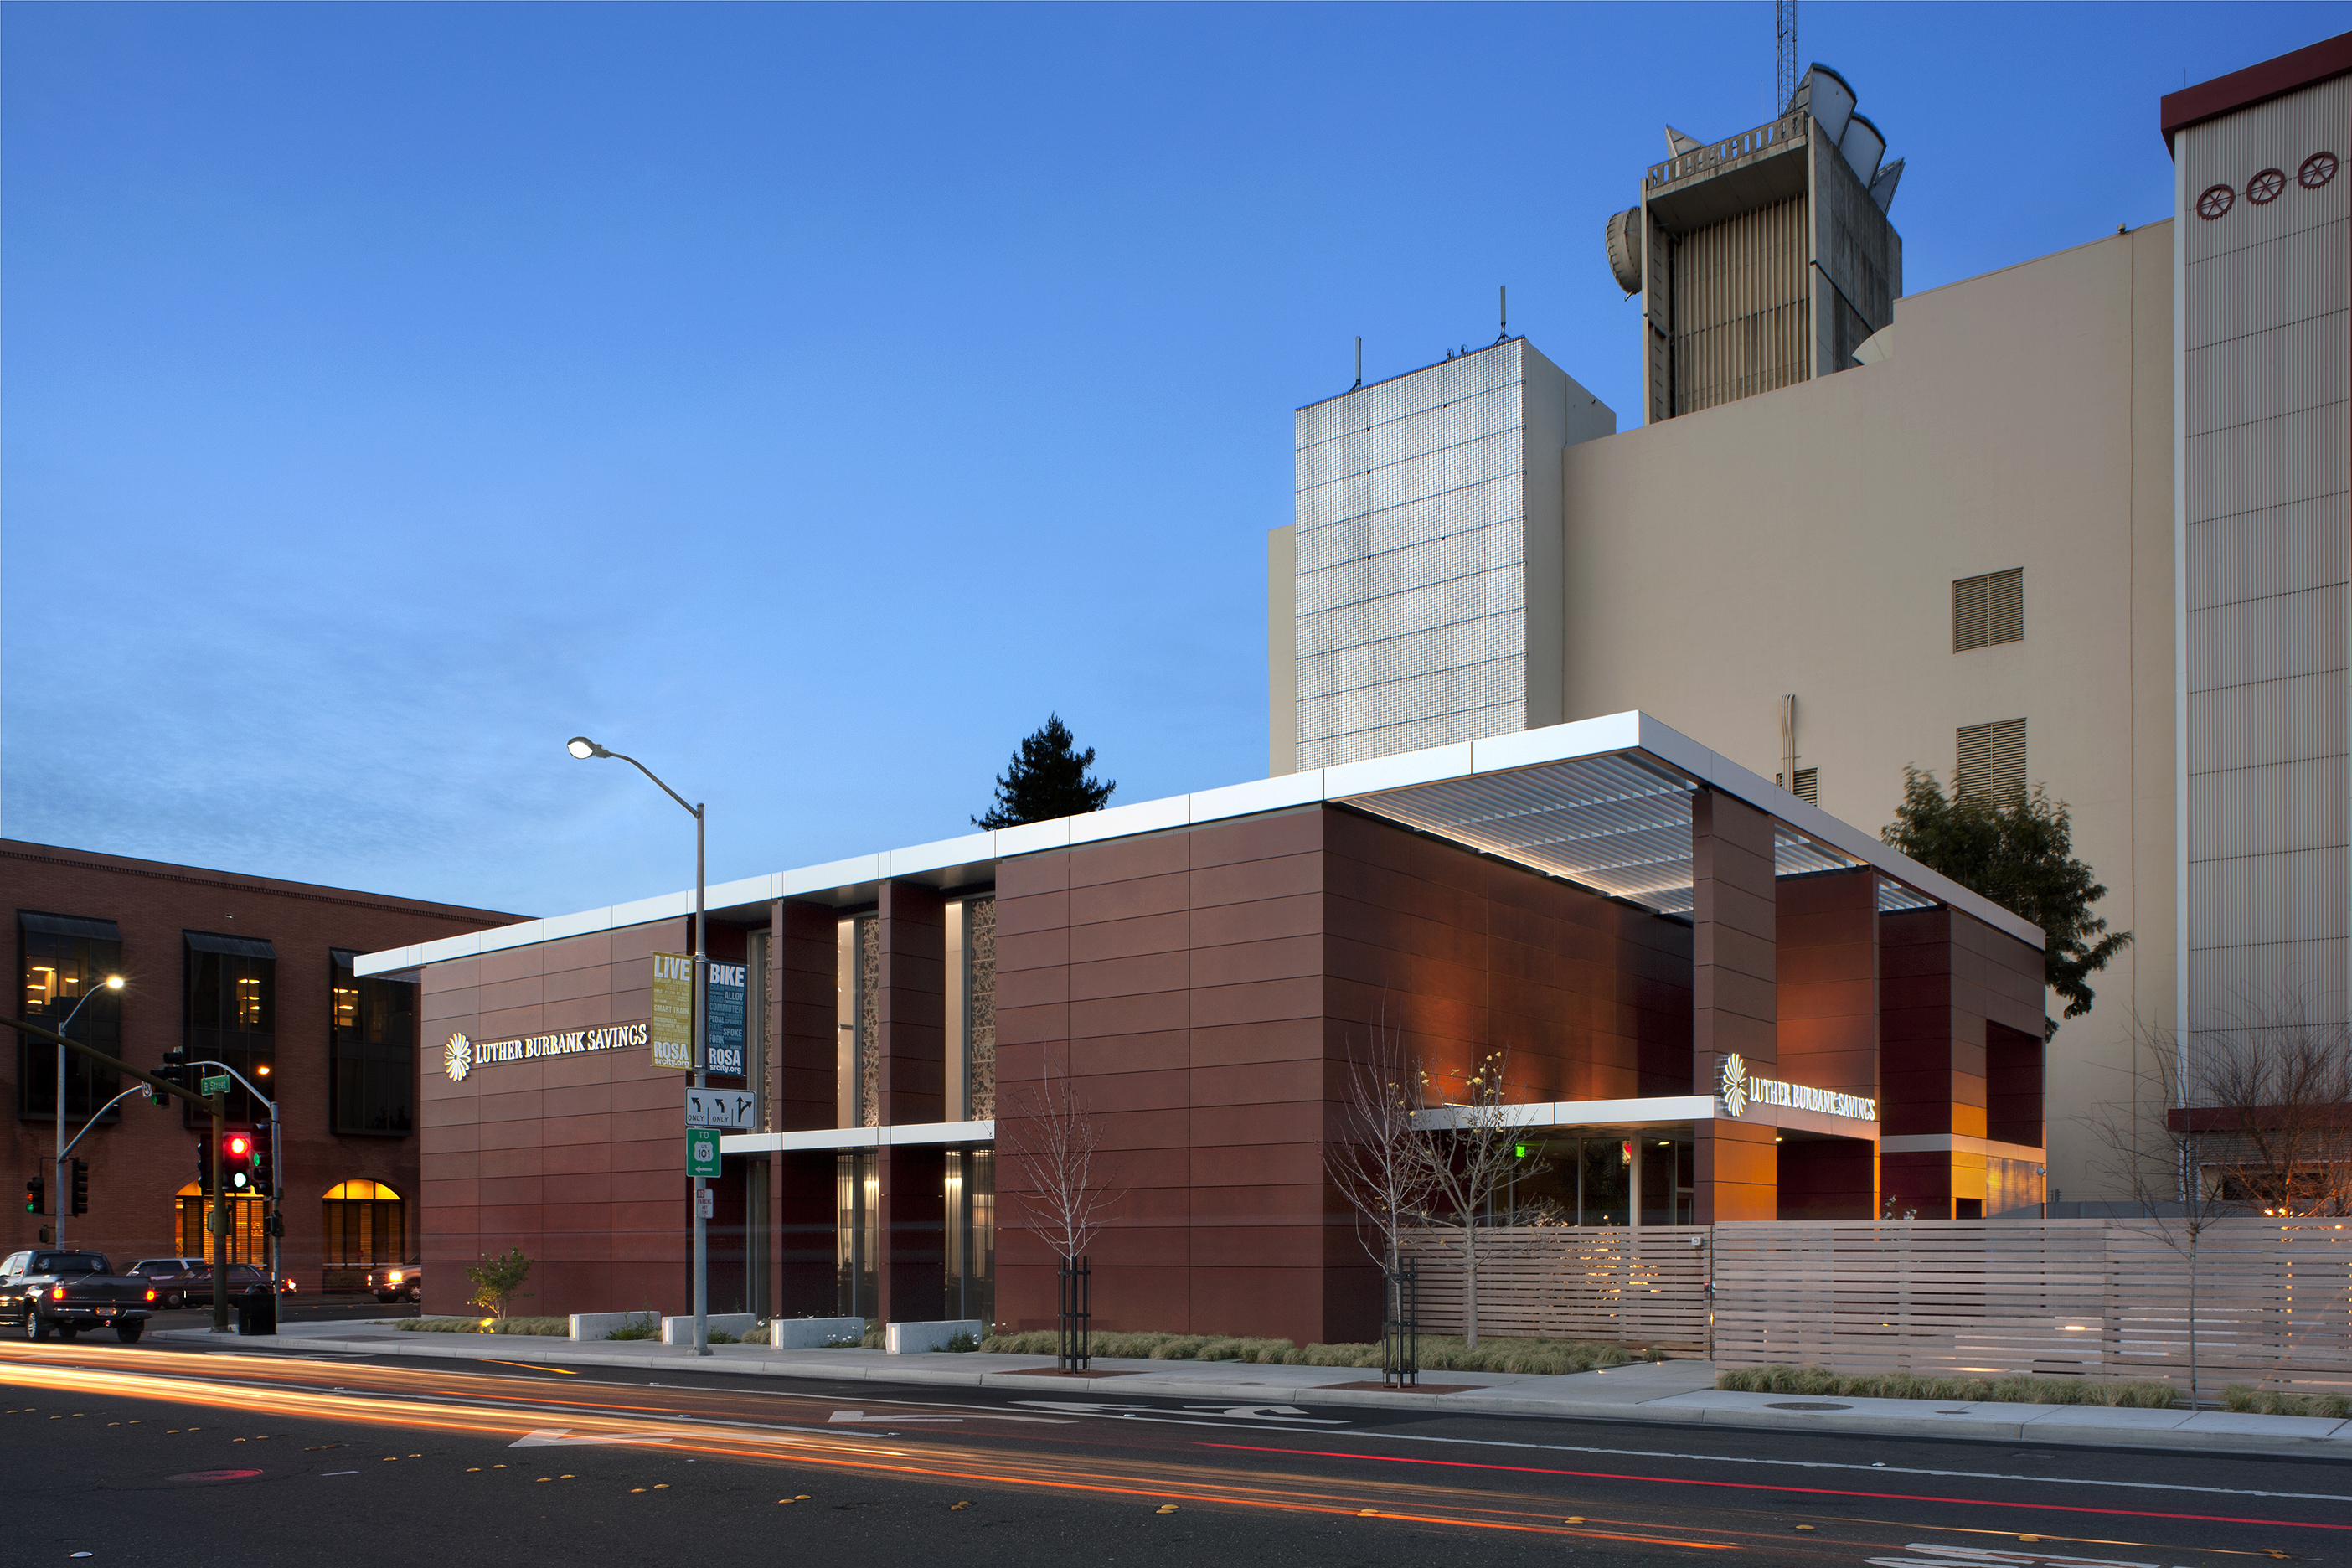 Tlcd Architecture, AIA Redwood Empire Design Awards, Merit Award, Luther  Burbank Savings Branch Photo